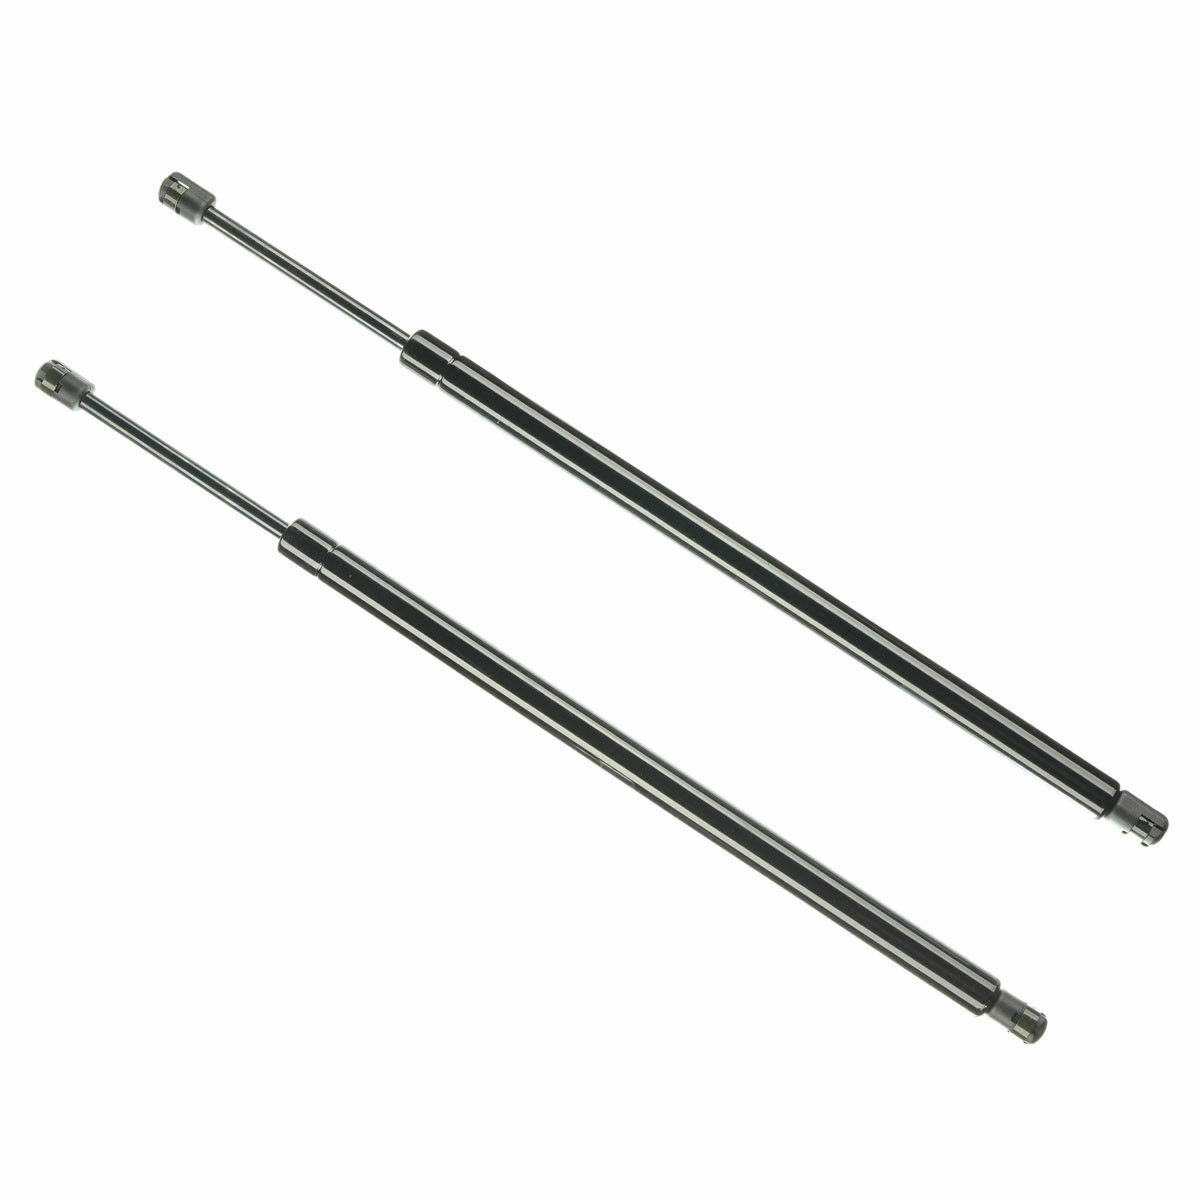 2 Pcs Rear Tailgate Lift Support Shock For Lincoln